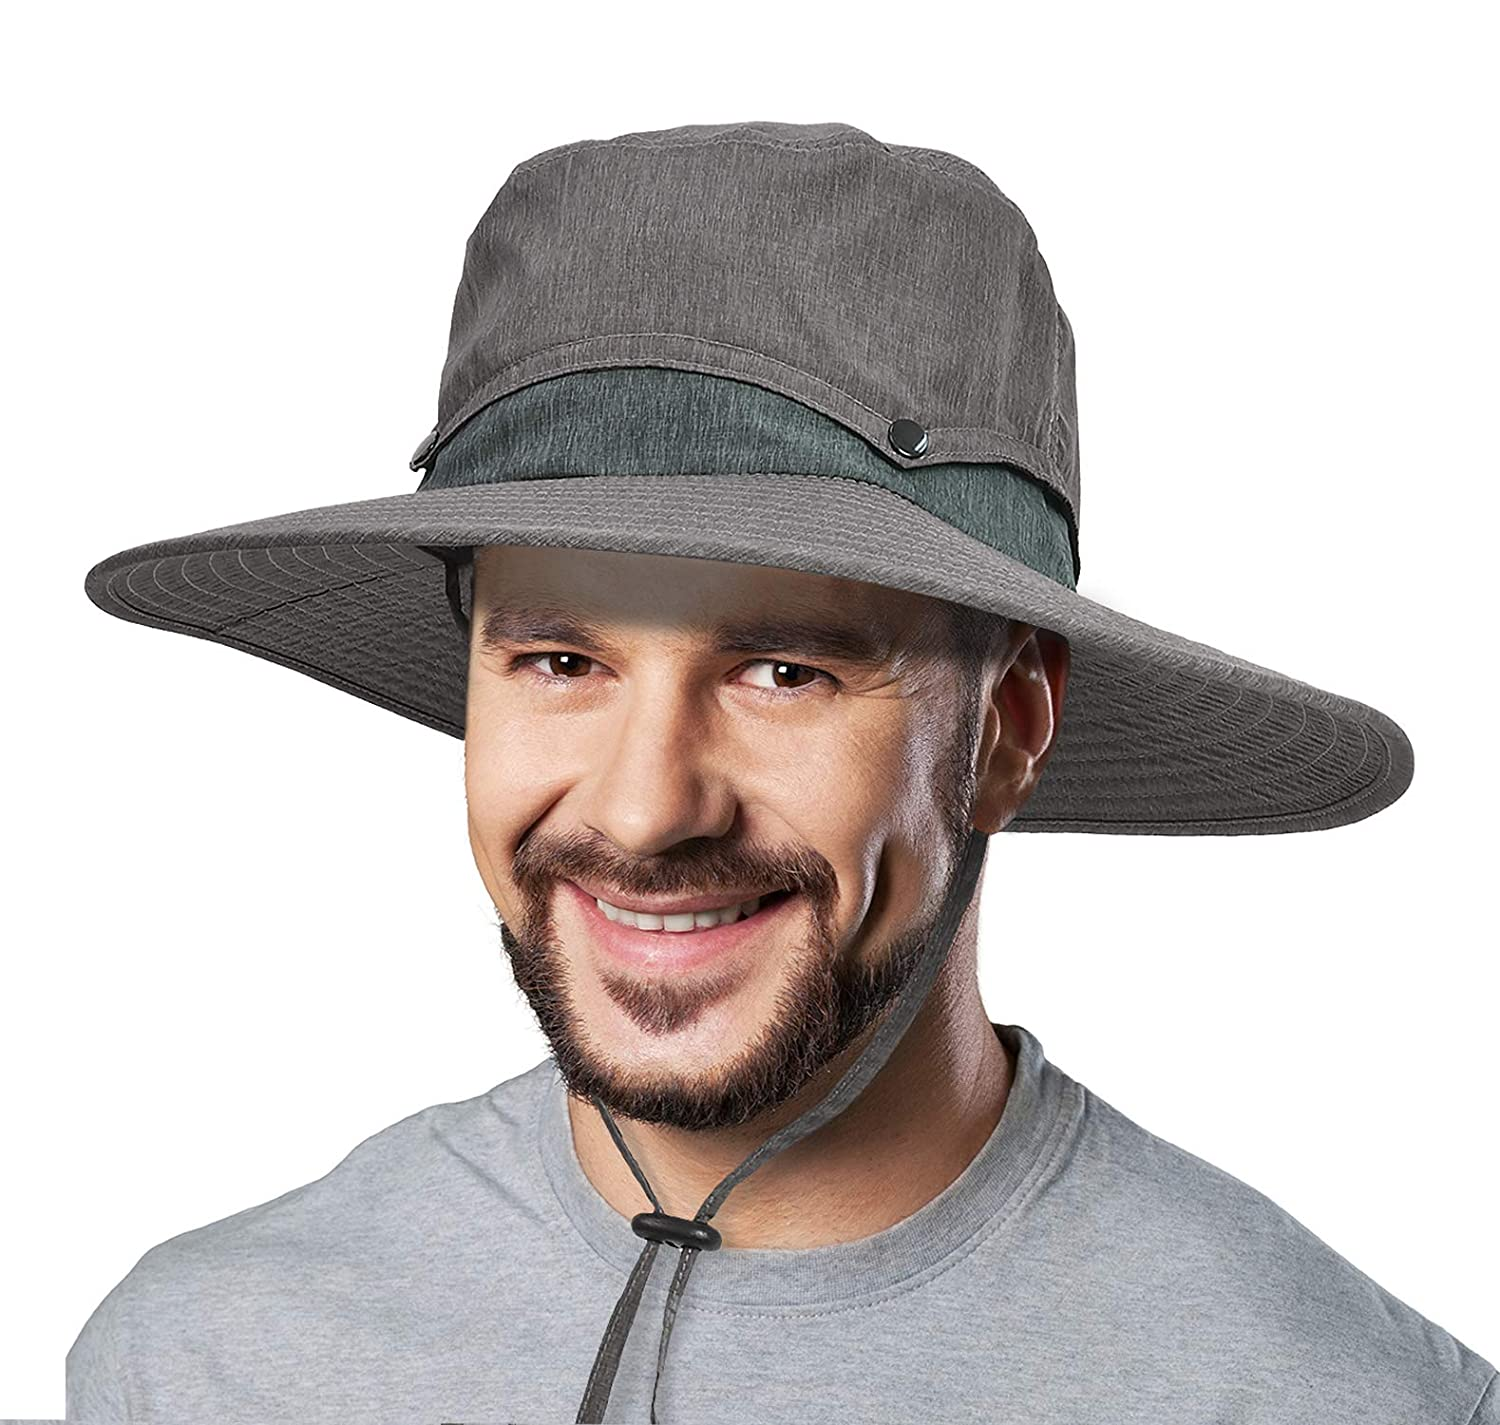 Breathable Sun Hat with Removable Crown UV Protection Outdoor Boonie Hat for Fishing Hiking Golfing Hunting Safari Travel Beach